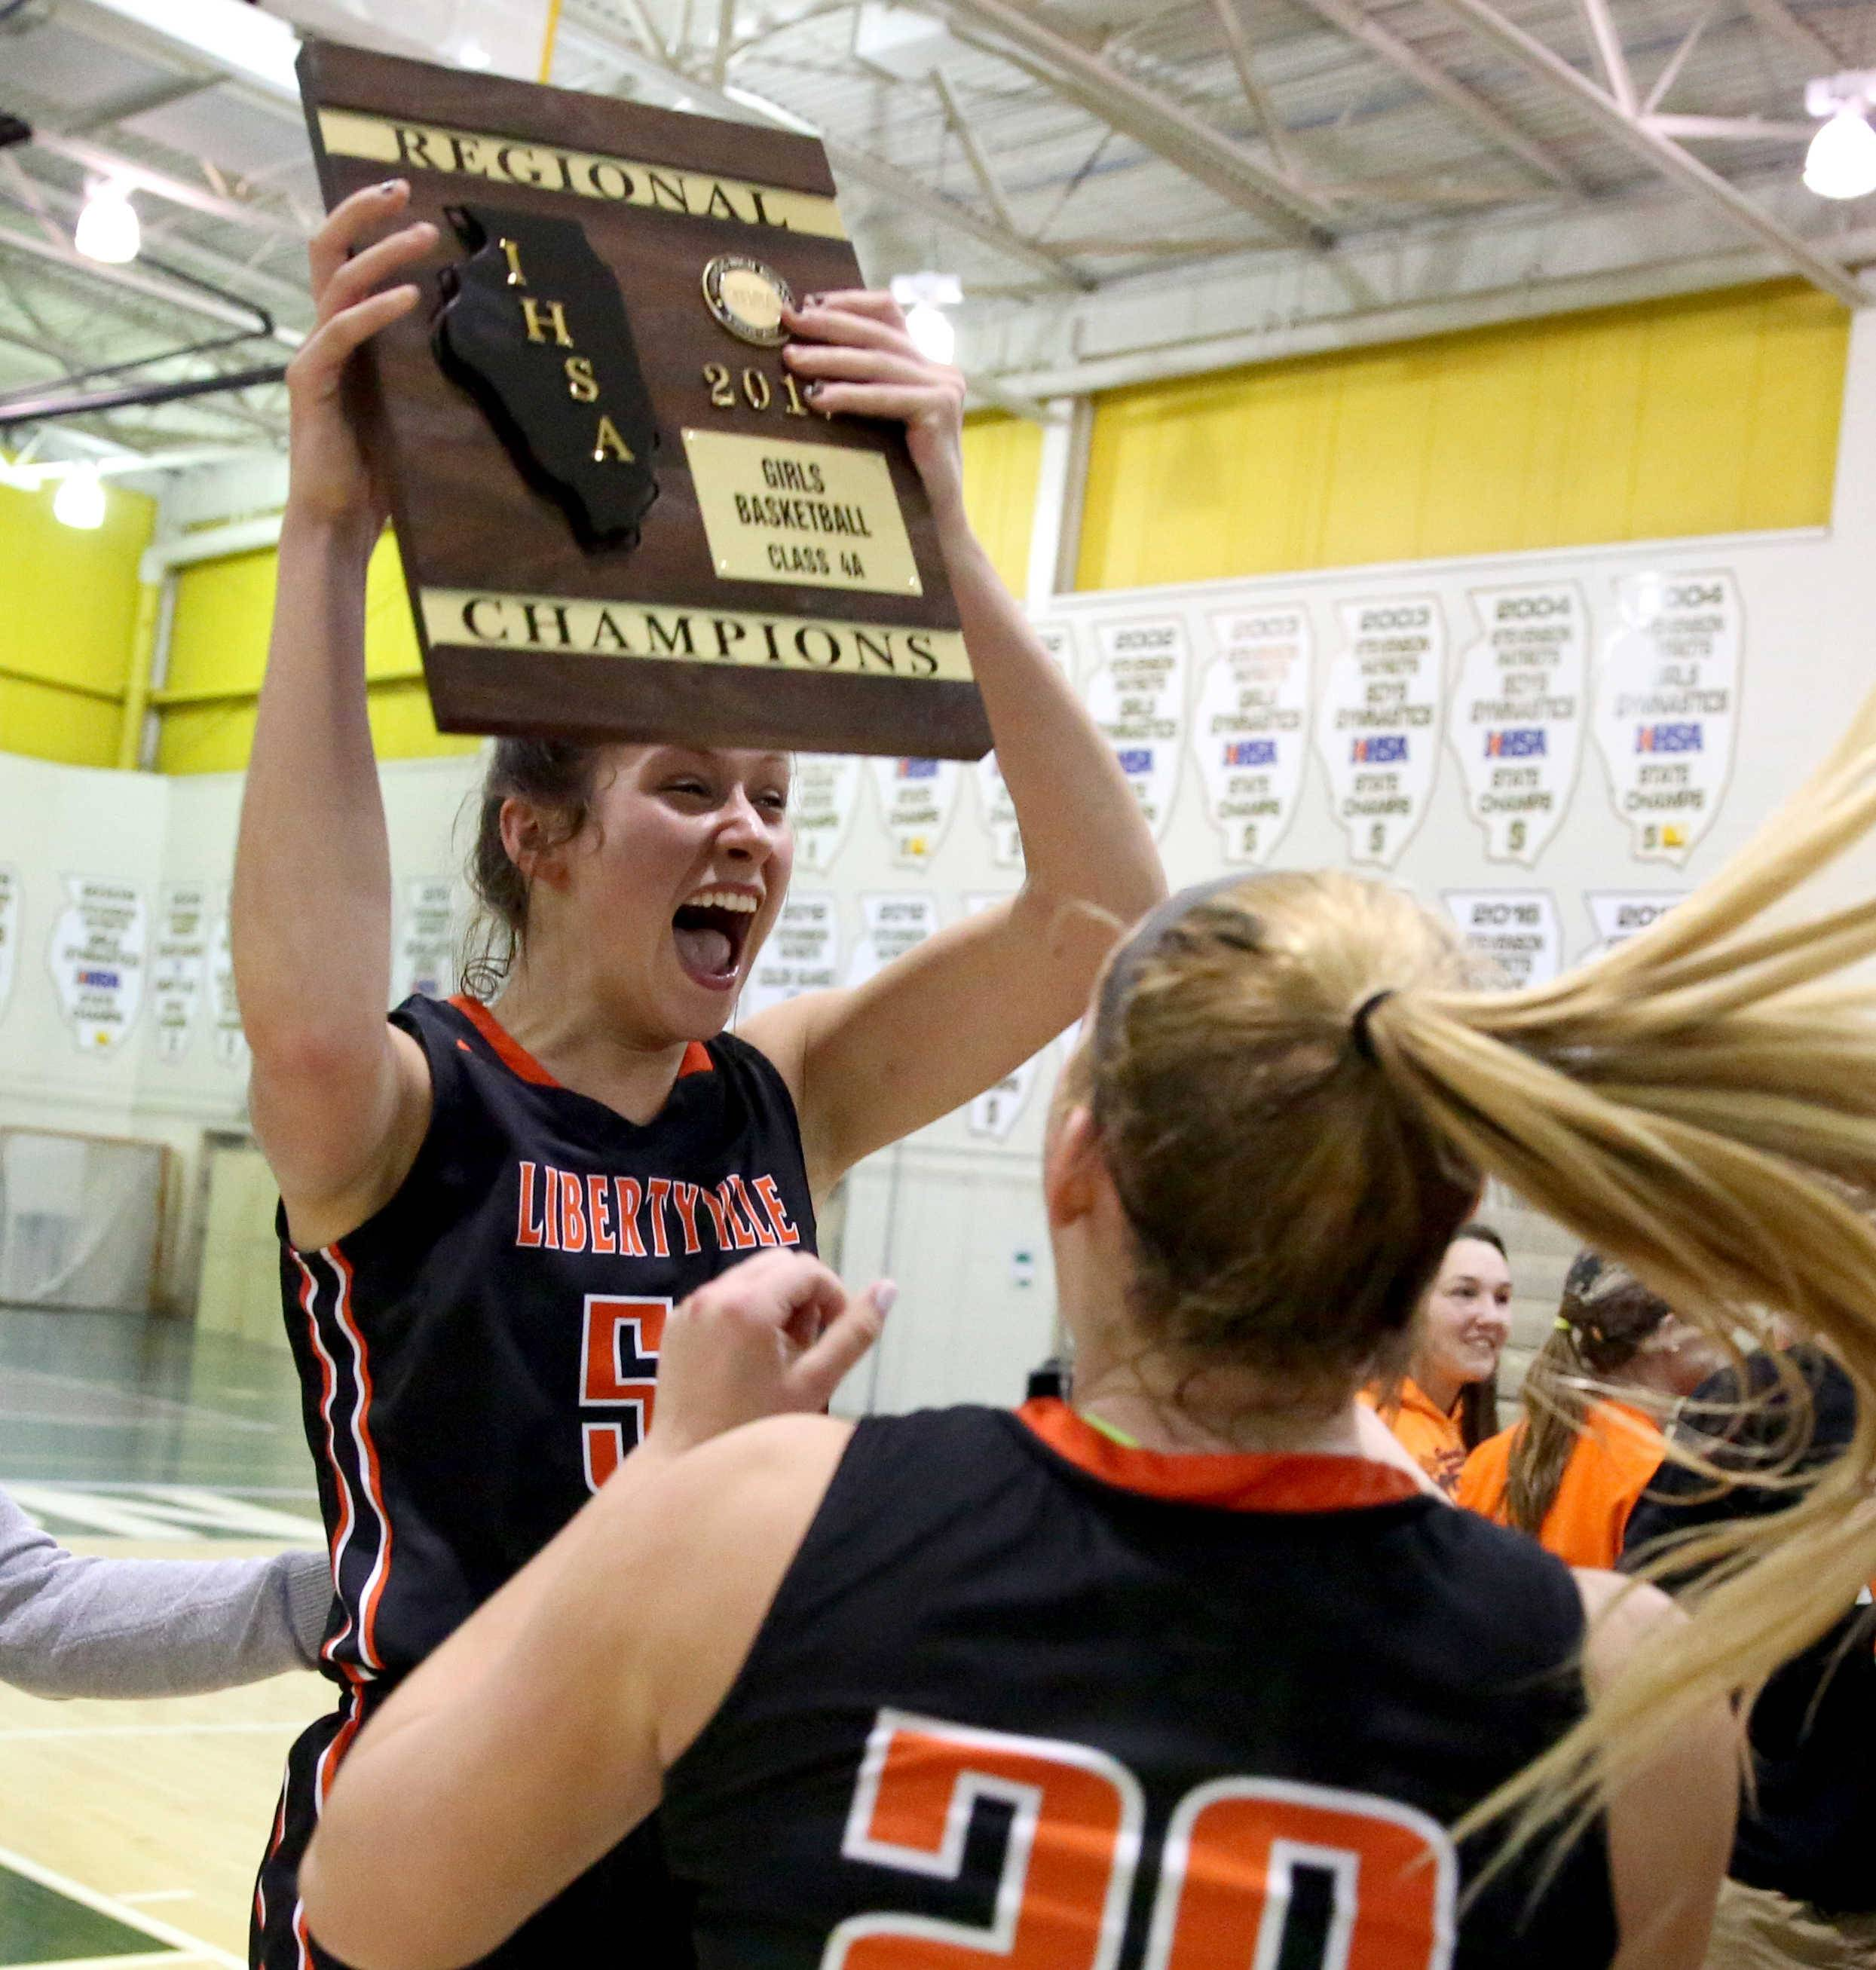 Libertyville's Claire Keefe hoists the hardware high after a win over Stevenson in Class 4A regional final play Friday at Stevenson. Libertyville won 35-33.